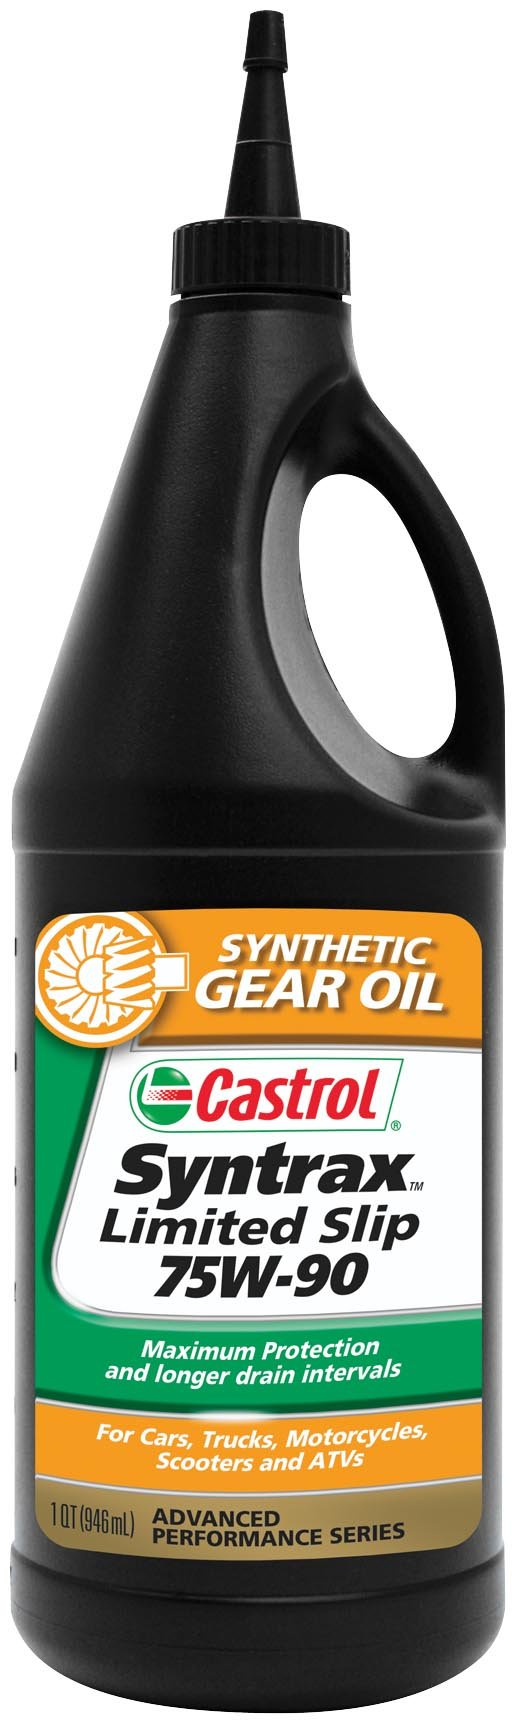 Castrol Syntrax Limited Slip Gear Oil - 75W-90 - 1 liter 06674